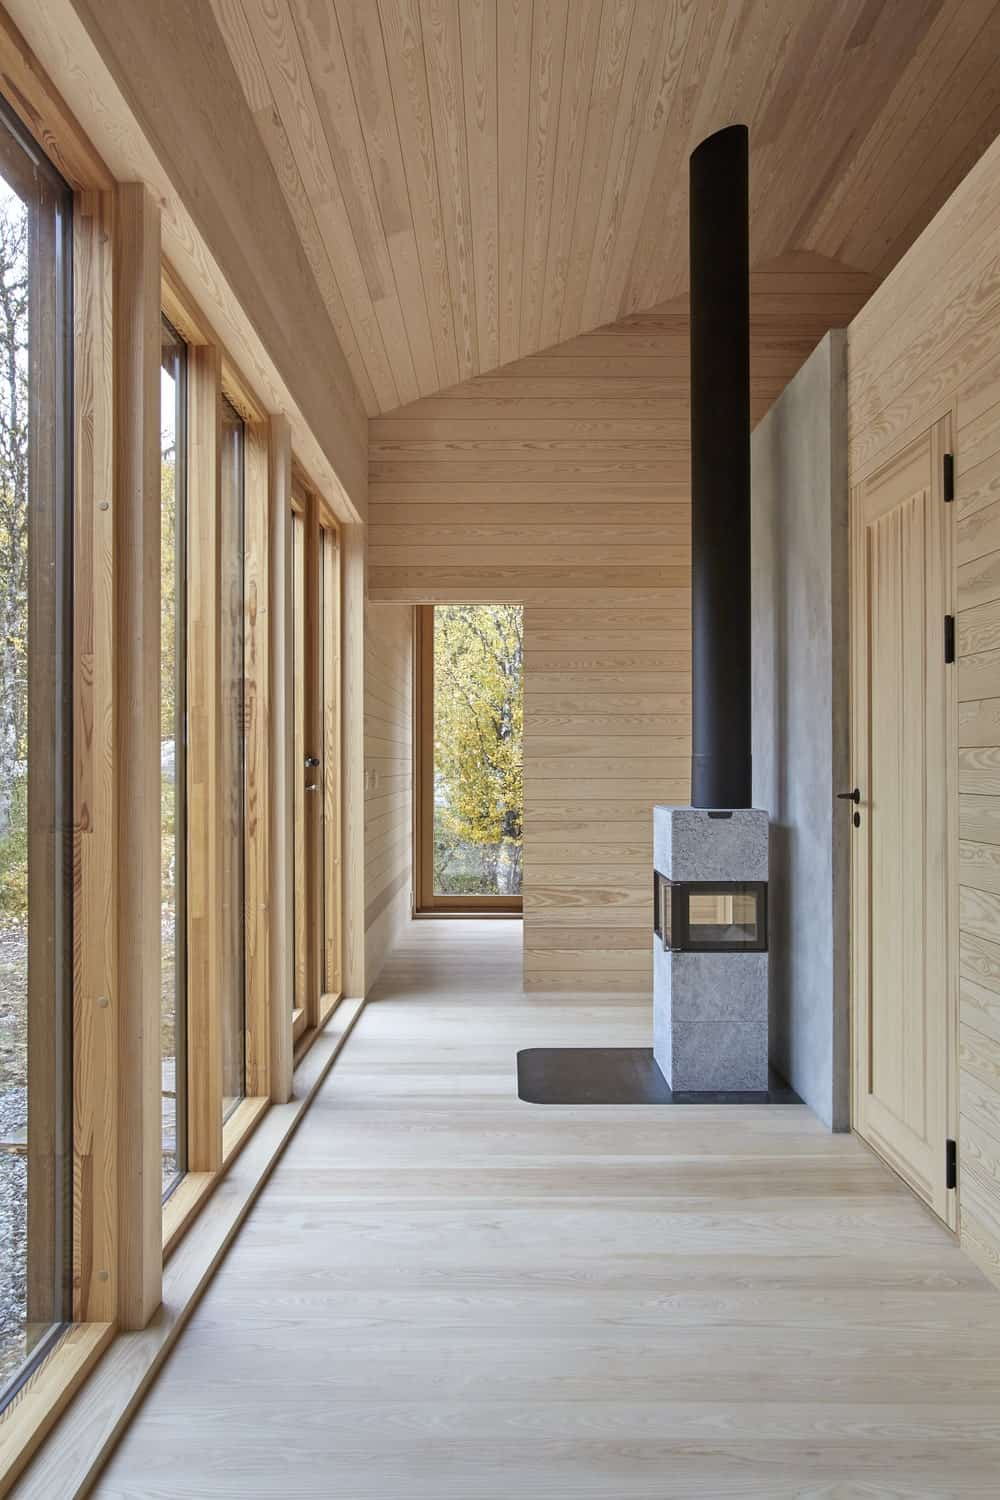 Upon entry of the house, you are welcomed by this simple foyer with a warm modern fireplace on the side of the main wooden door.